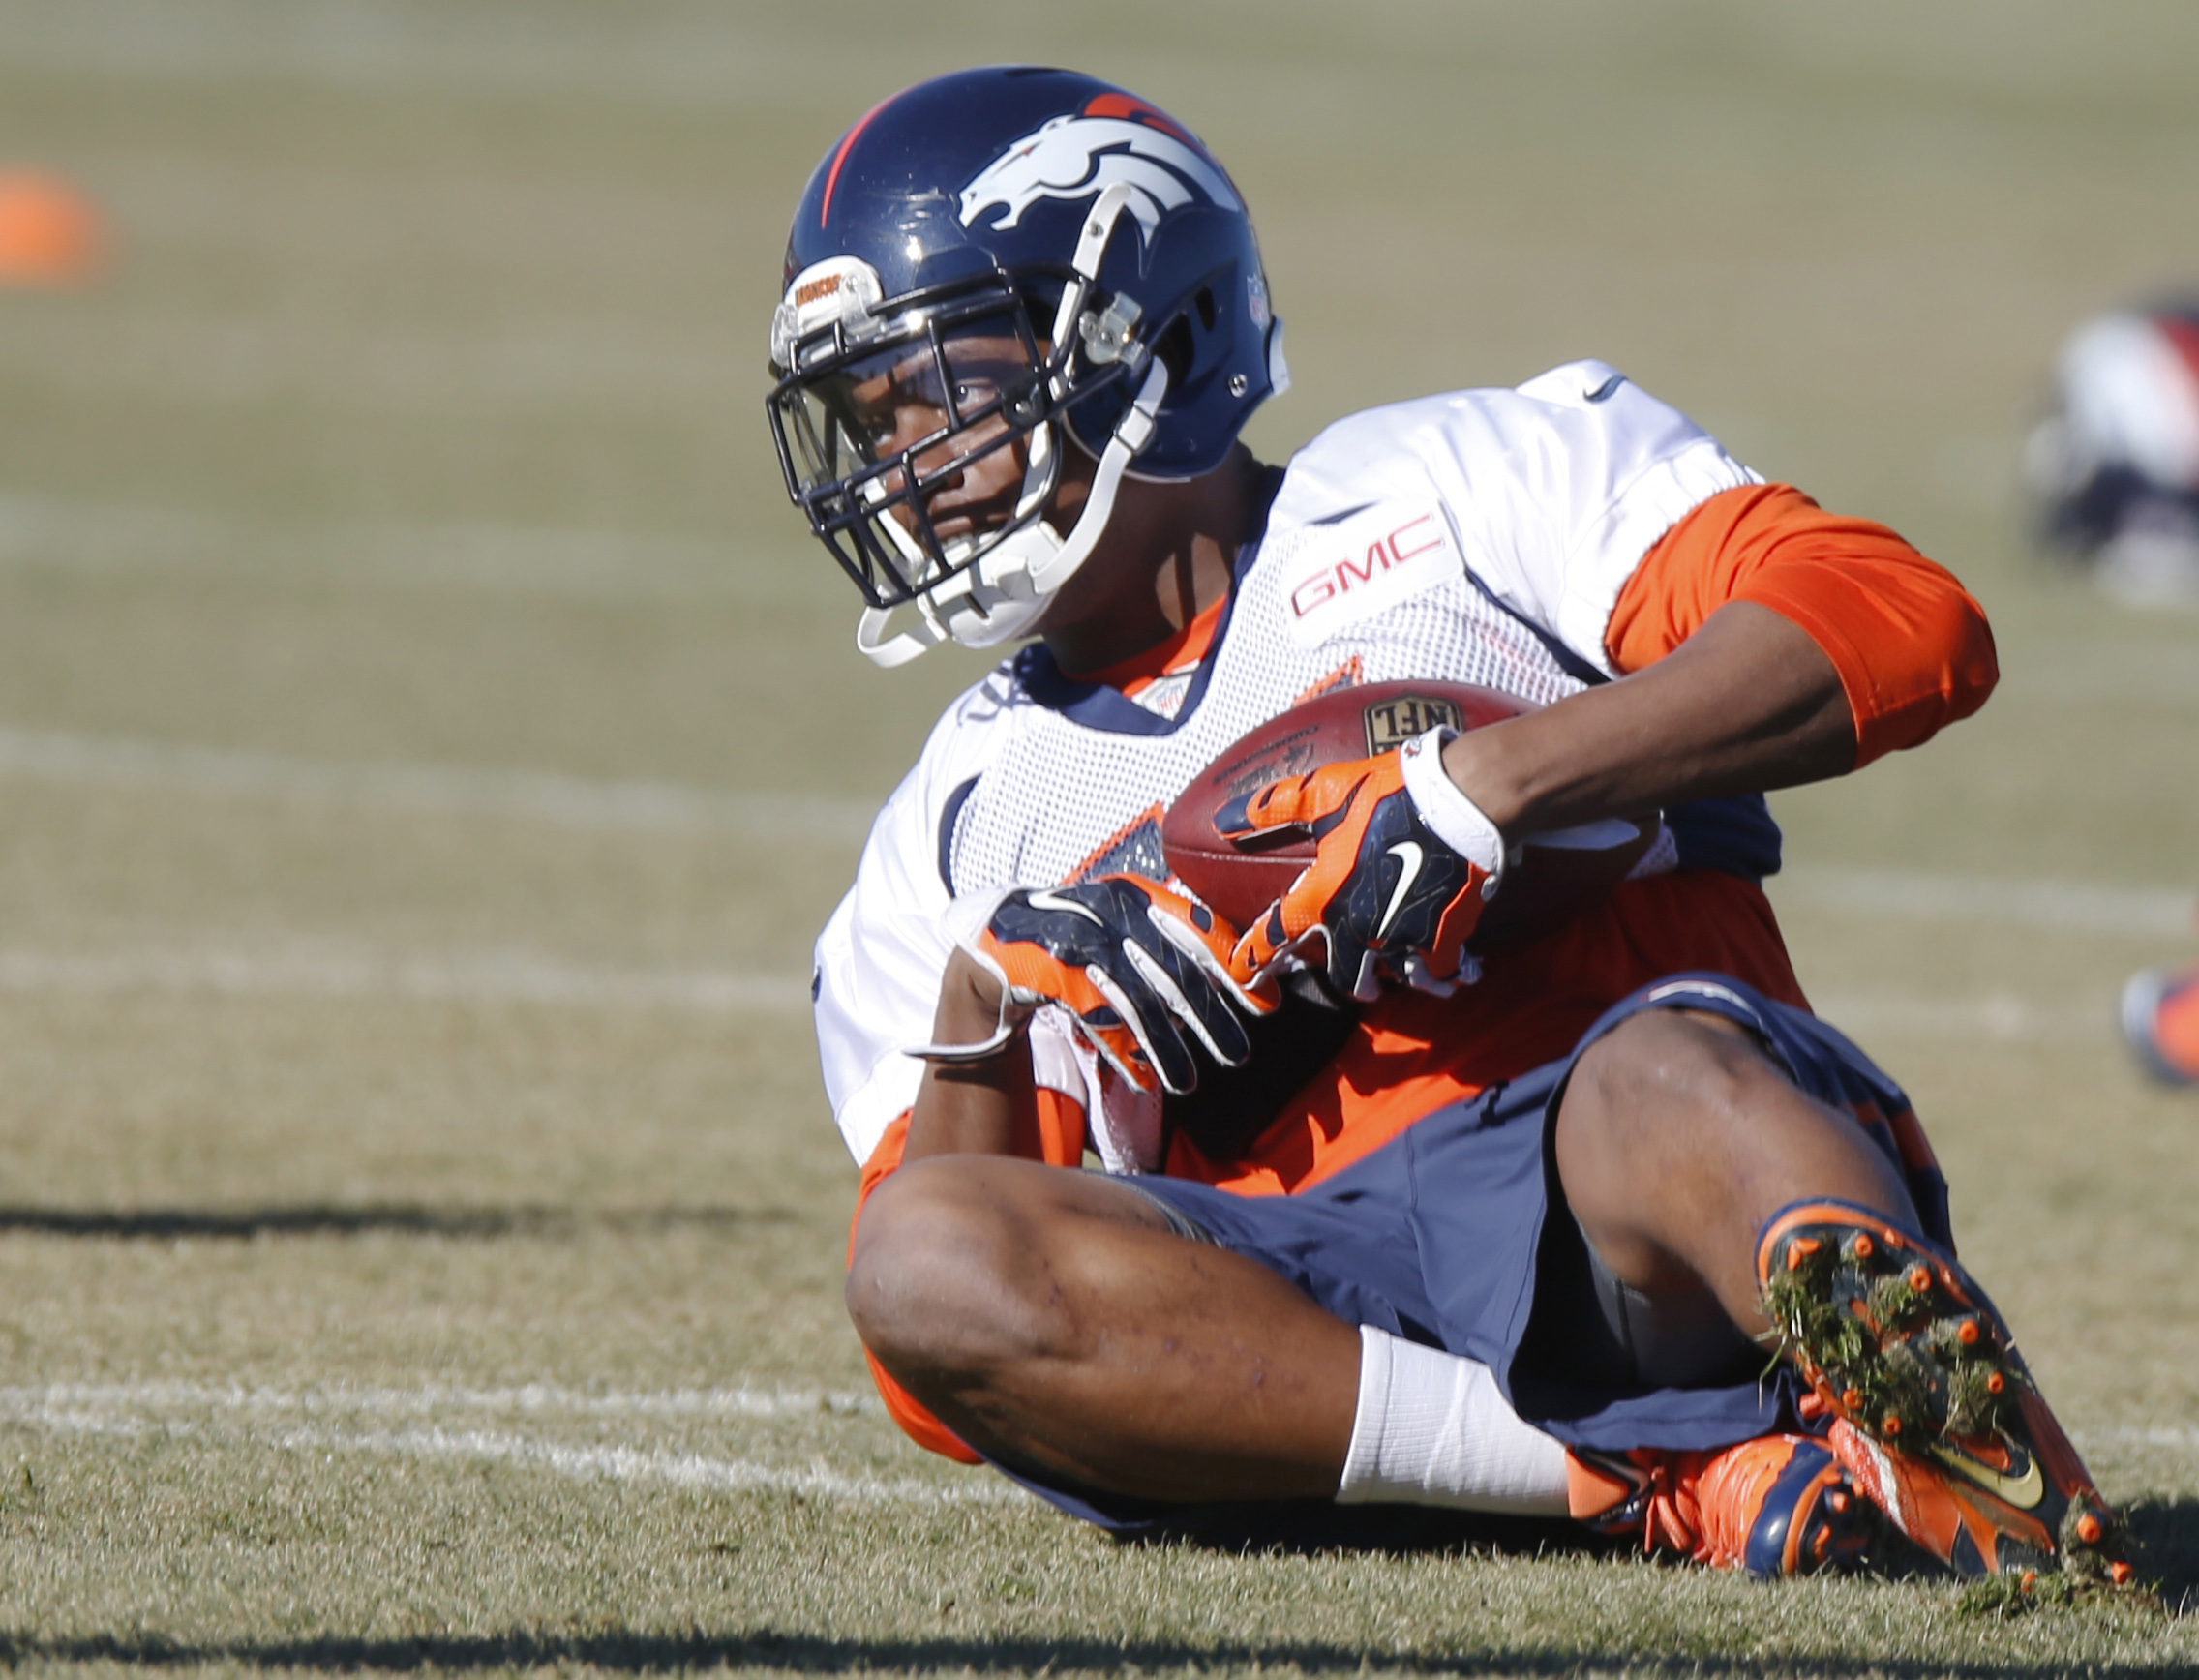 FILE - In this Jan, 8, 2015, file photo, Denver Broncos linebacker Brandon Marshall covers a fumble as part of a drill during a team practice for an NFL football divisional playoff game against the Indianapolis Colts in Englewood, Colo. Marshall like his